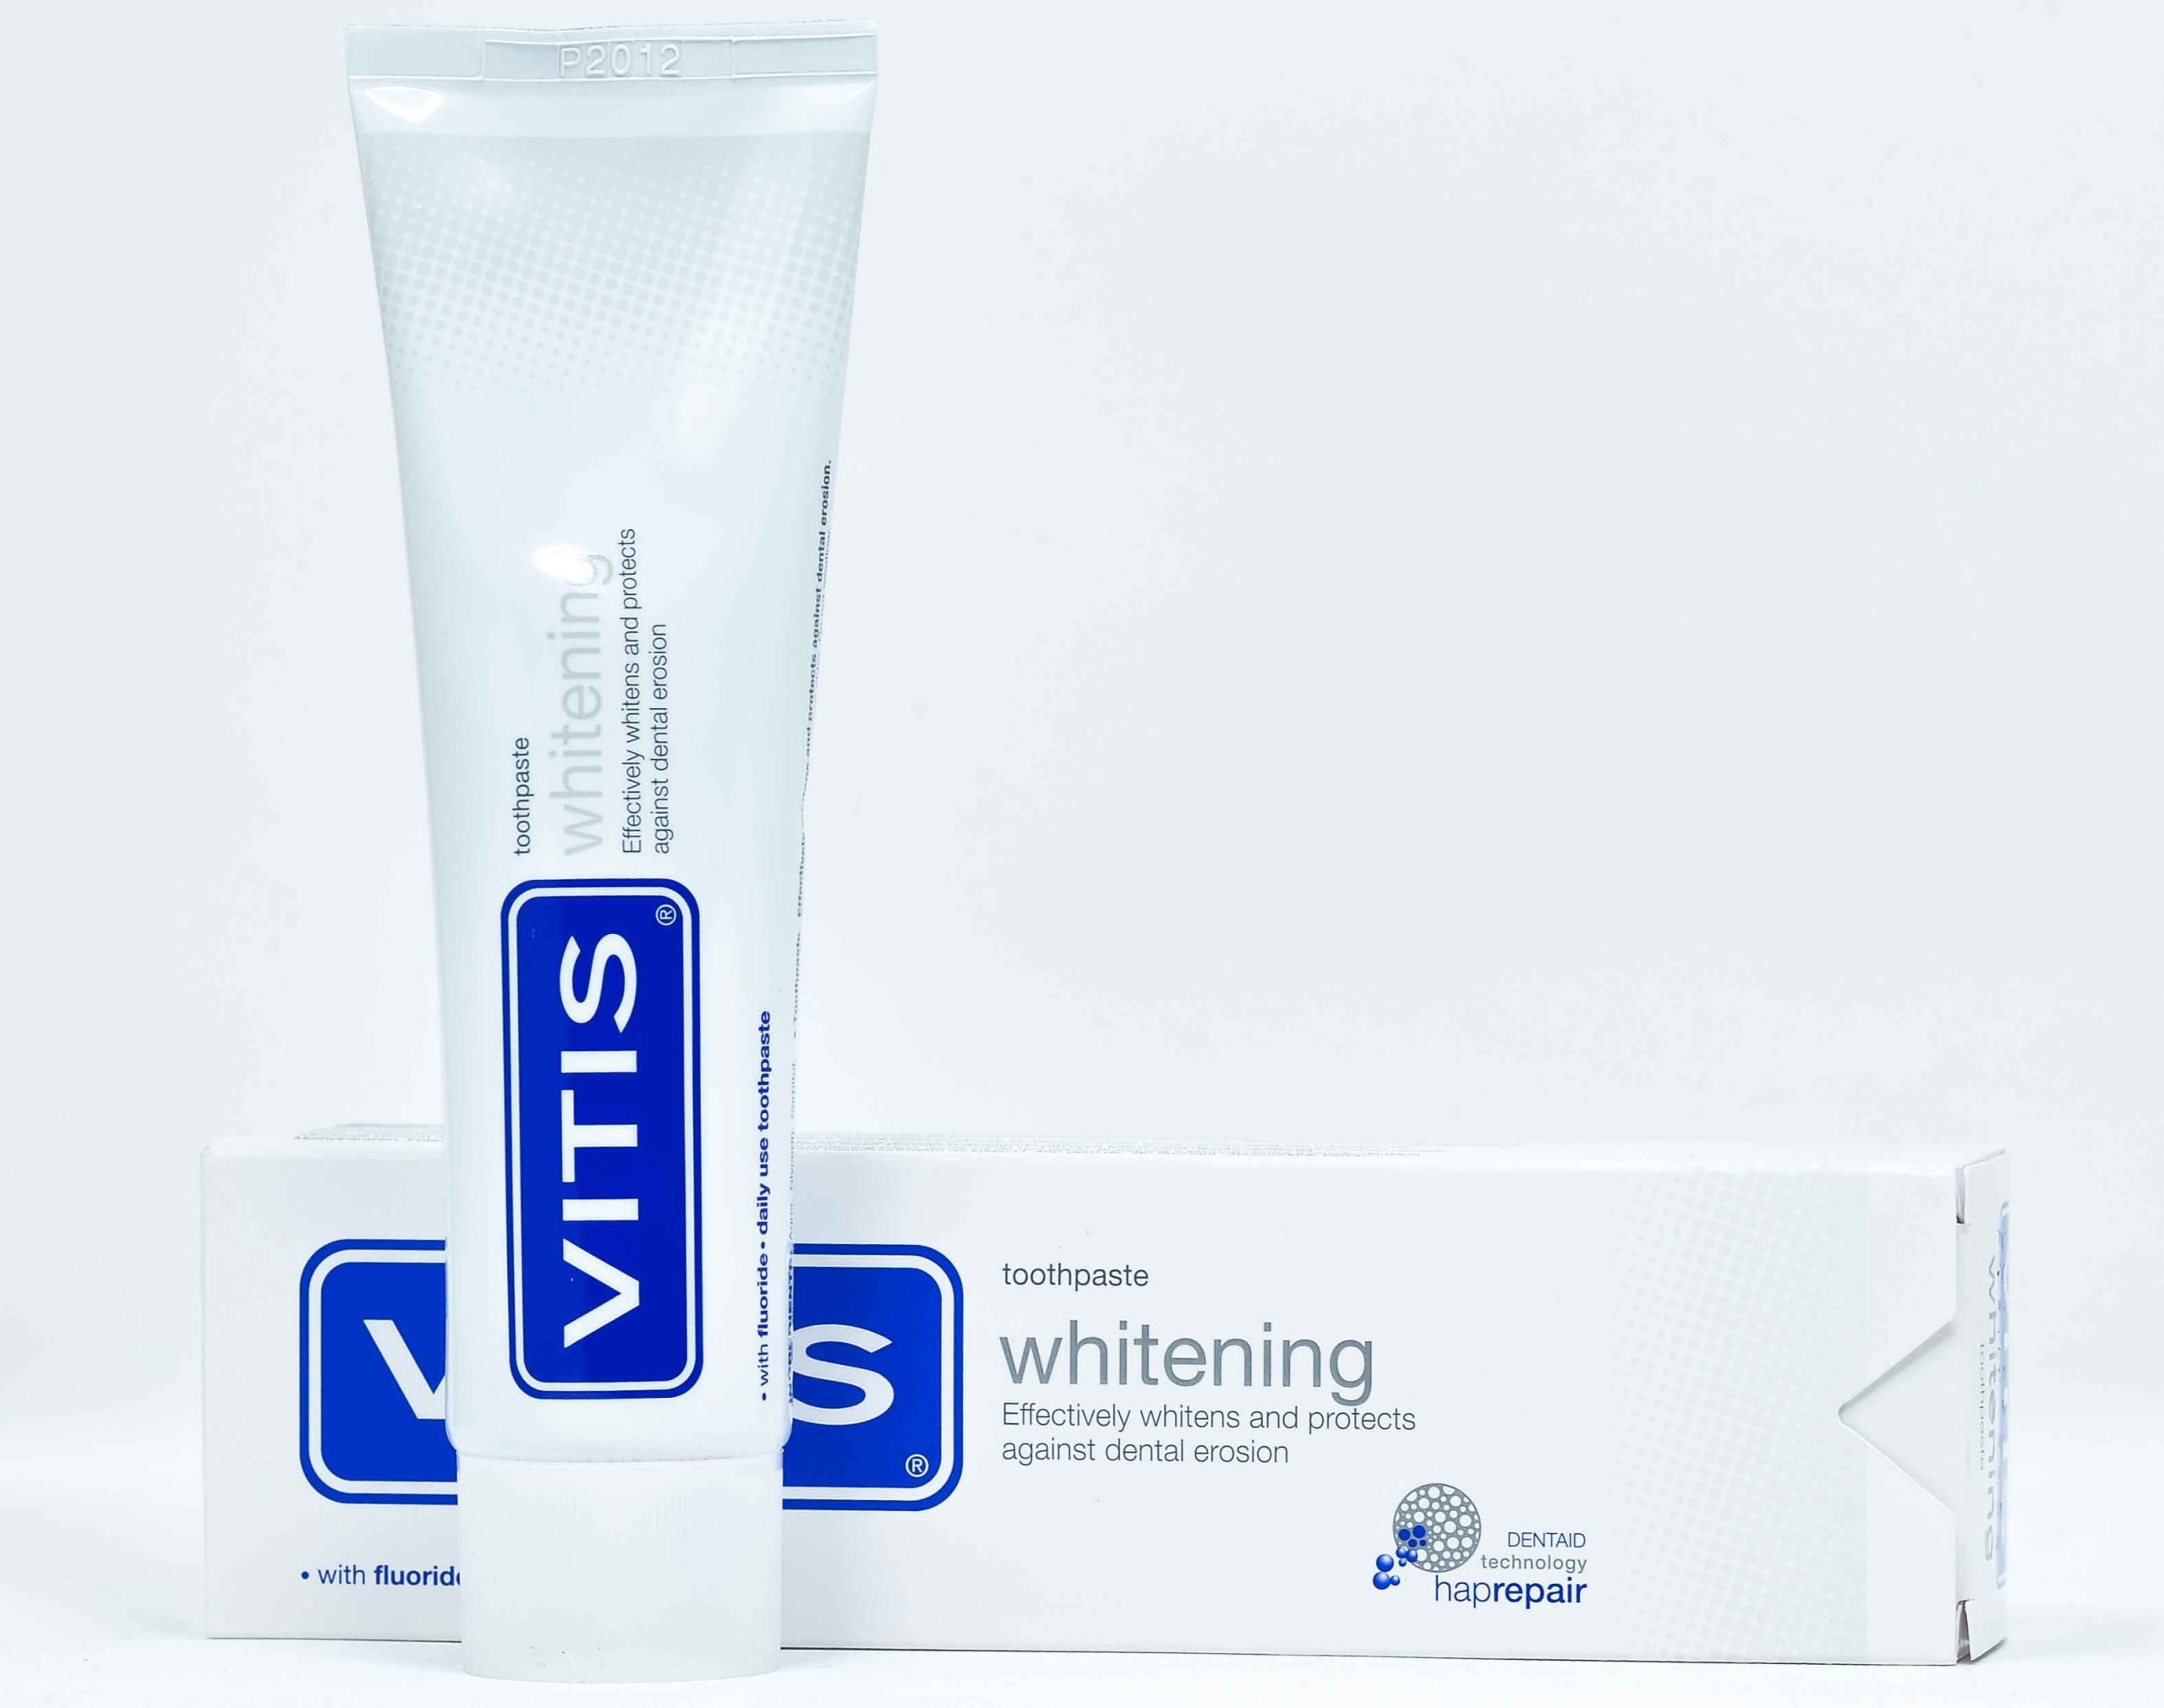 Dentaid Dentifricio Vitis Whitening - 100 ml